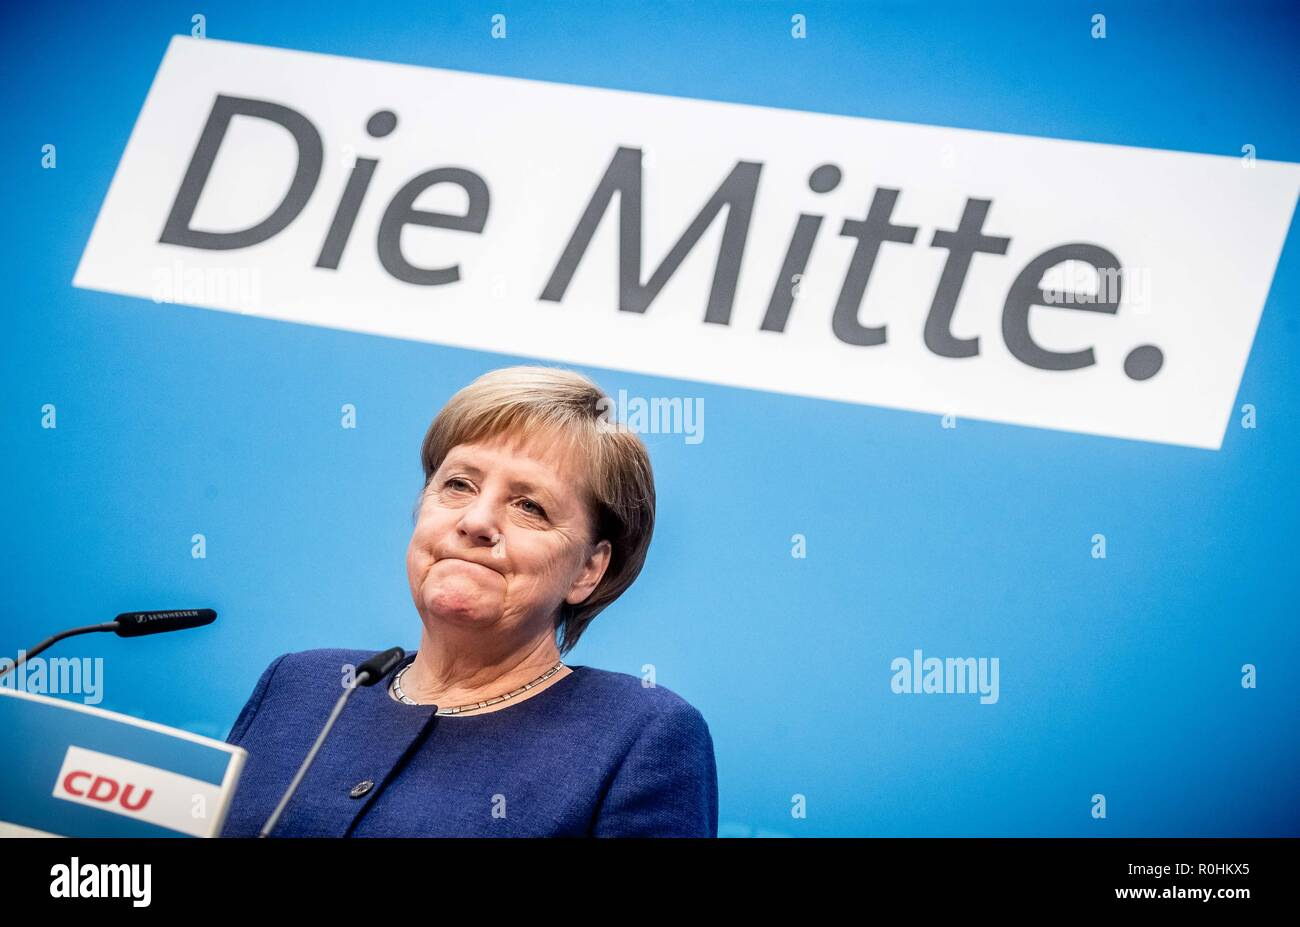 Berlin, Germany. 05th Nov, 2018. German Chancellor Angela Merkel of the Christian Democratic Union speaks at a press conference of the CDU in the party headquarters, Konrad-Adenauer-Haus. Credit: Michael Kappeler/dpa/Alamy Live News - Stock Image